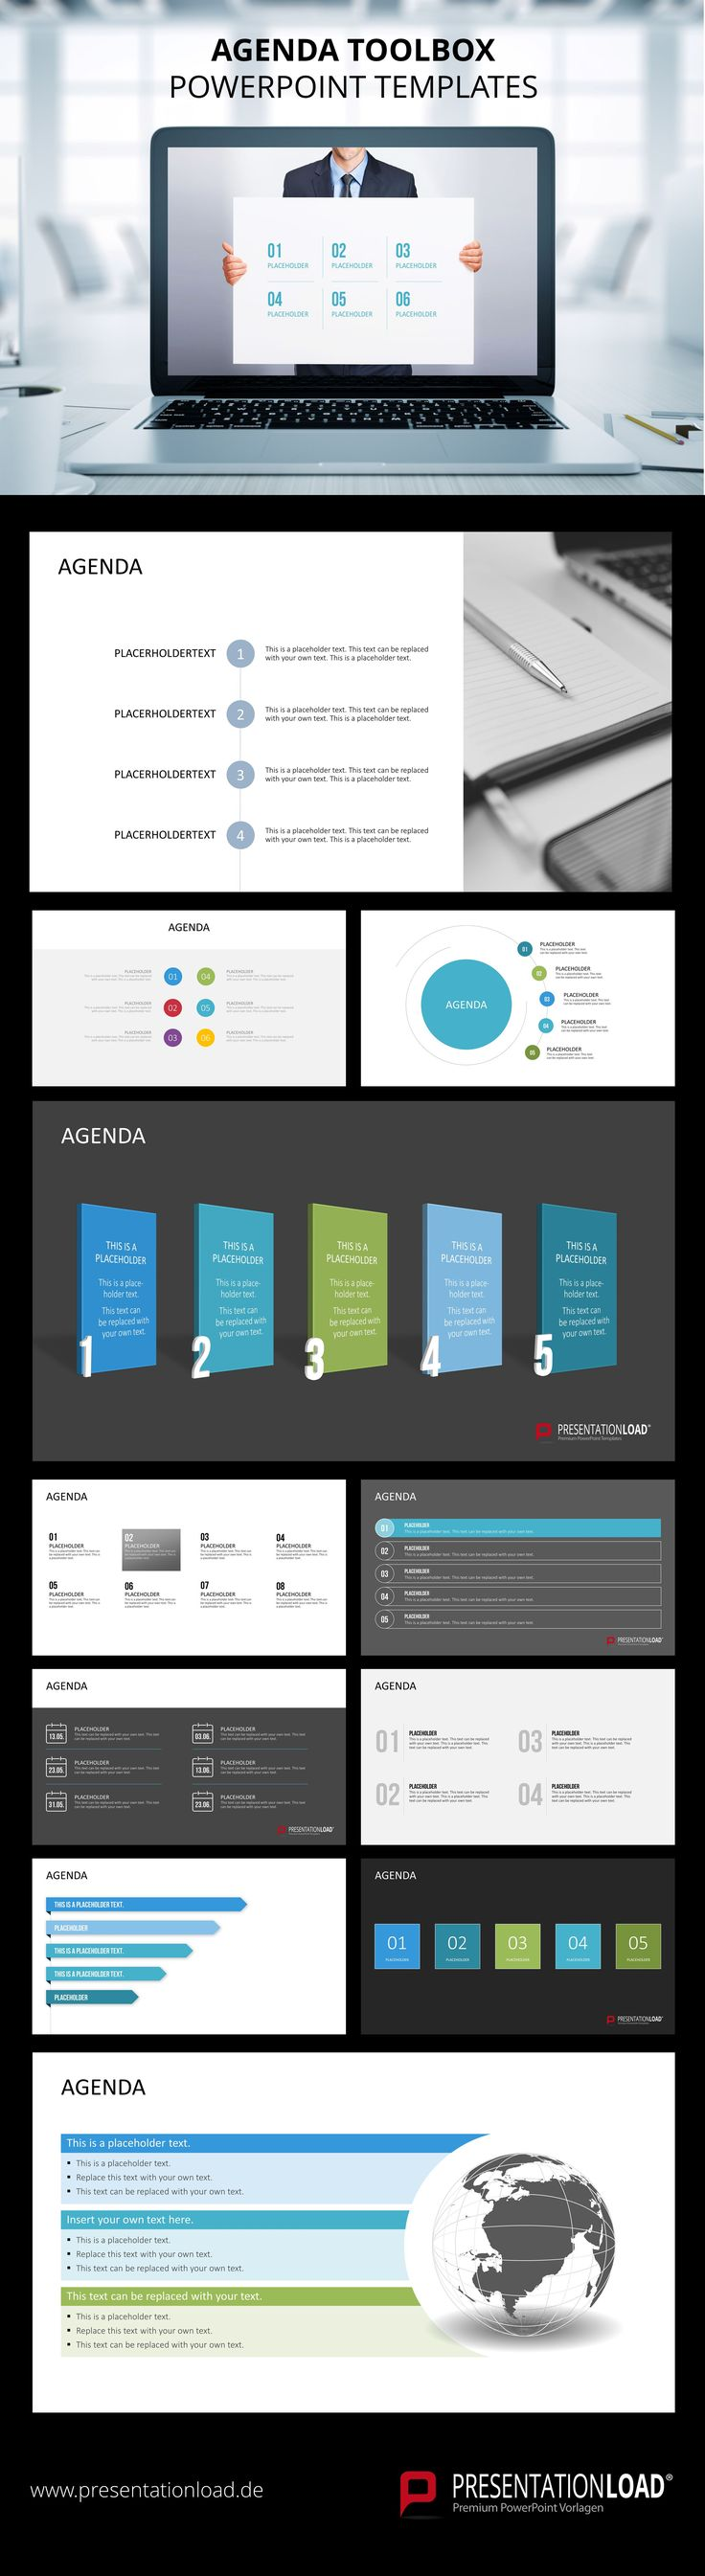 Take advantage of our large selection of professional agenda layouts for your PowerPoint presentation.